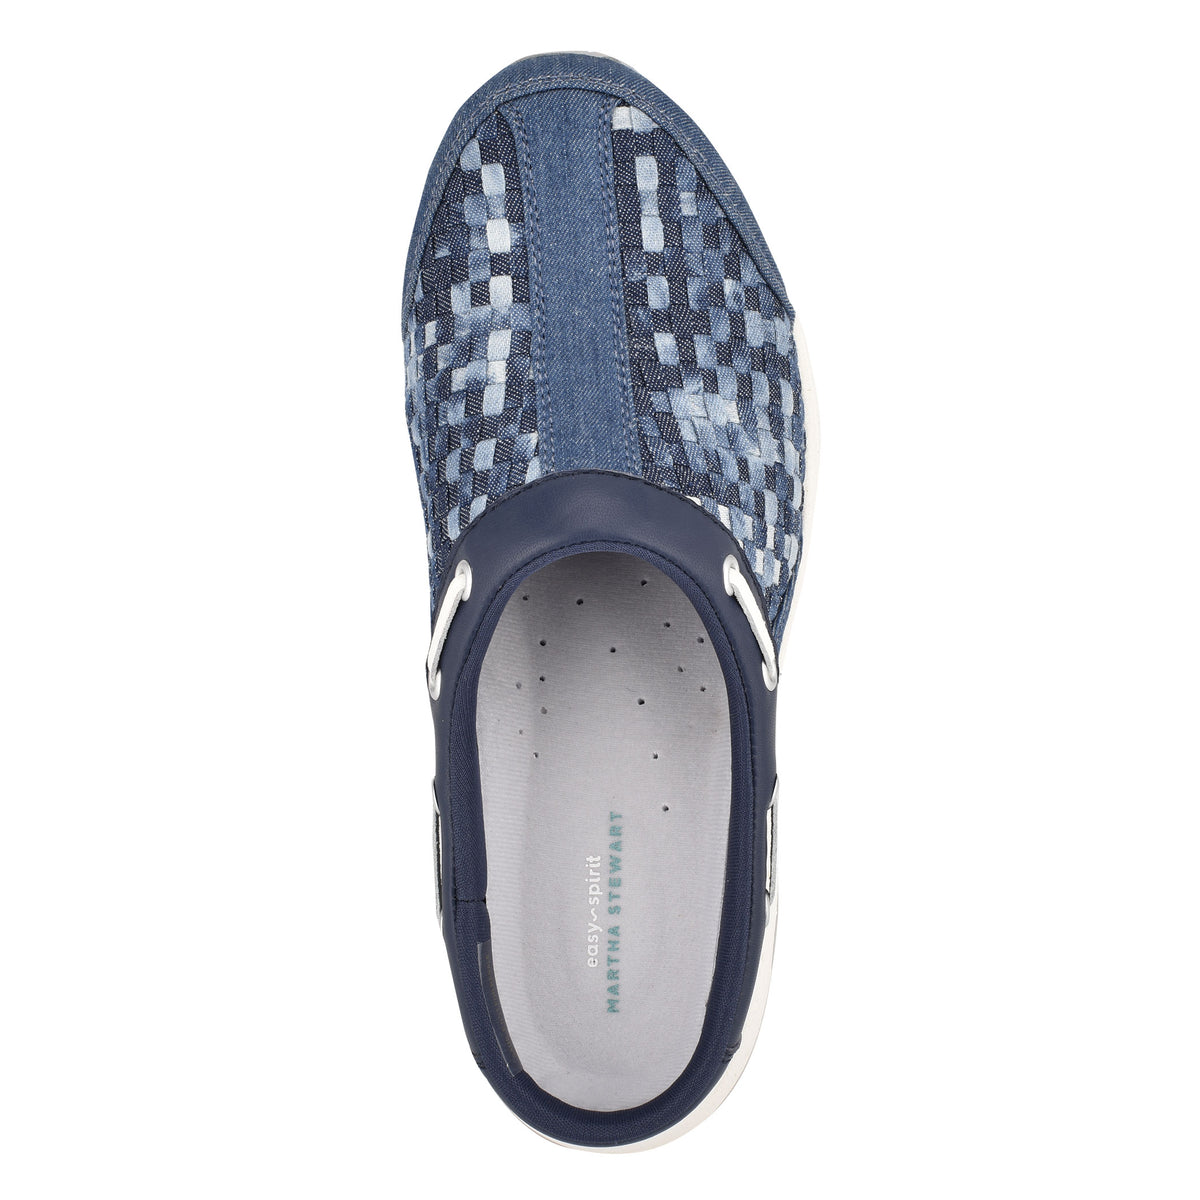 Martha Stewart Travelport Clogs